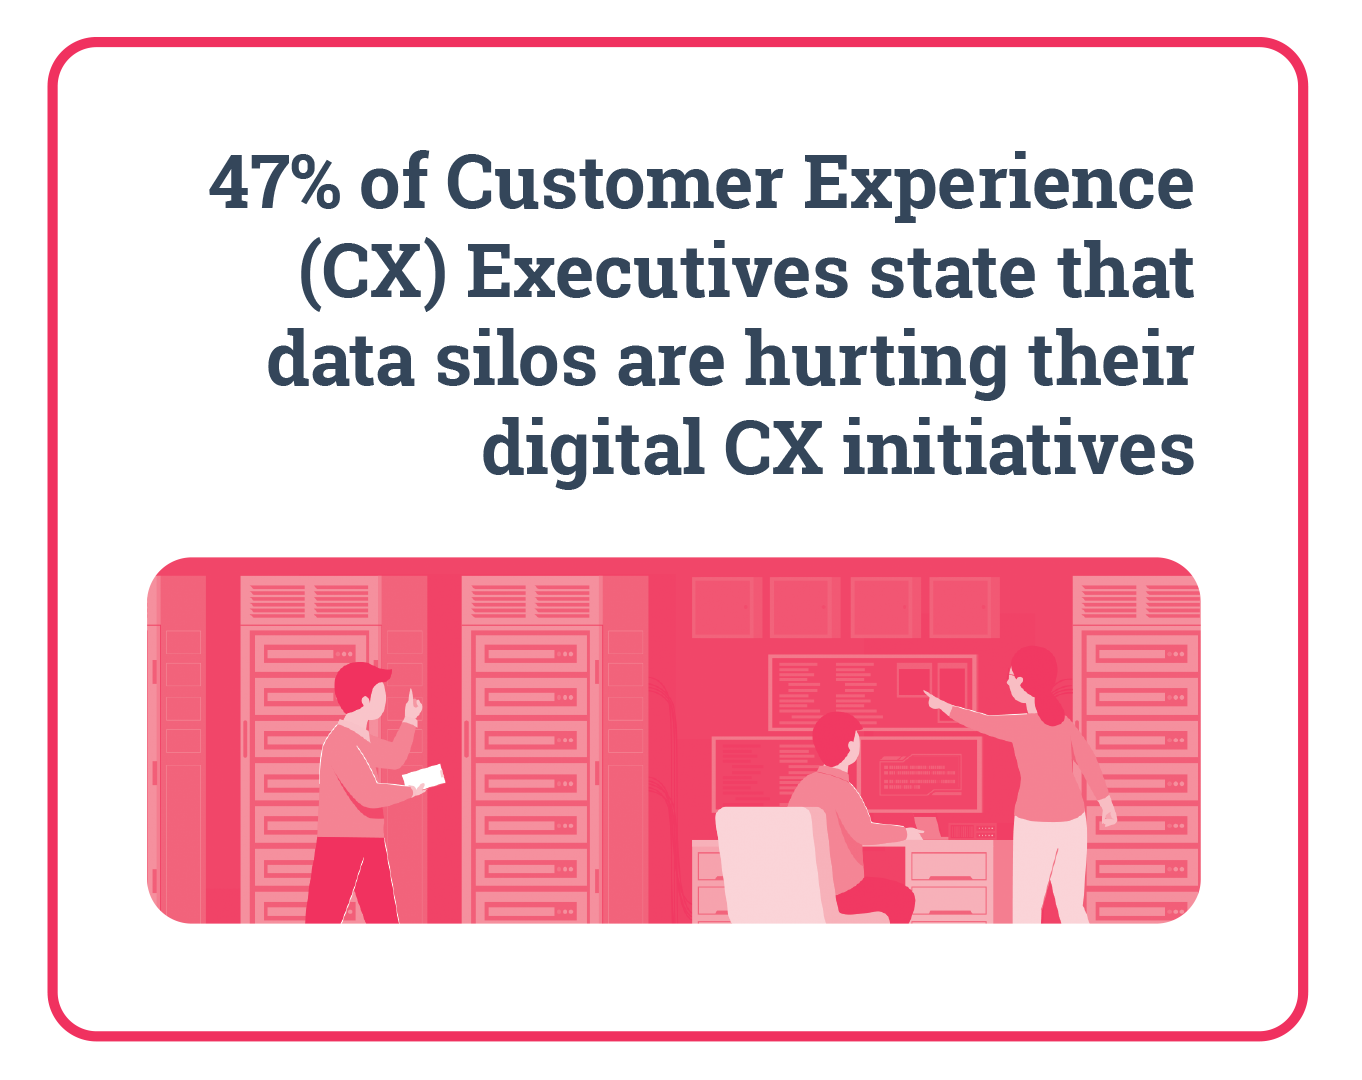 47% of Customer Experience (CX) Executives state that data silos are hurting their digital CX initiatives. Data Integration.